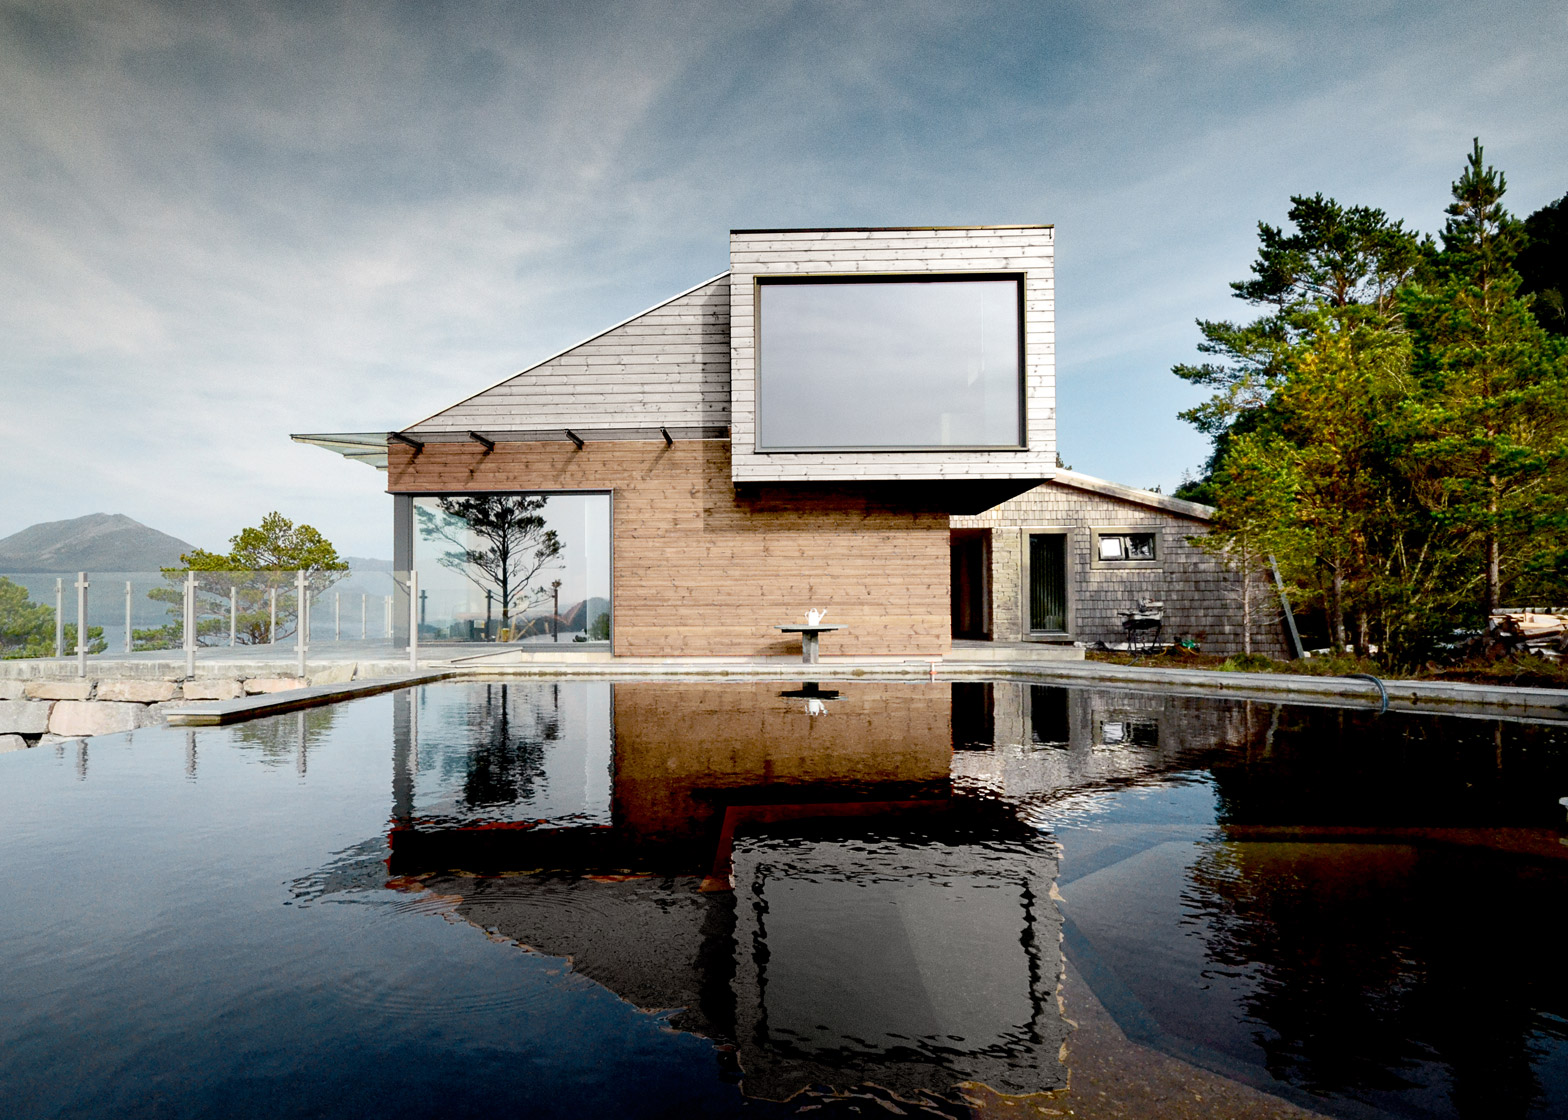 cabin-straumsnes-rever-drage-architects-norway_dezeen_1568_0